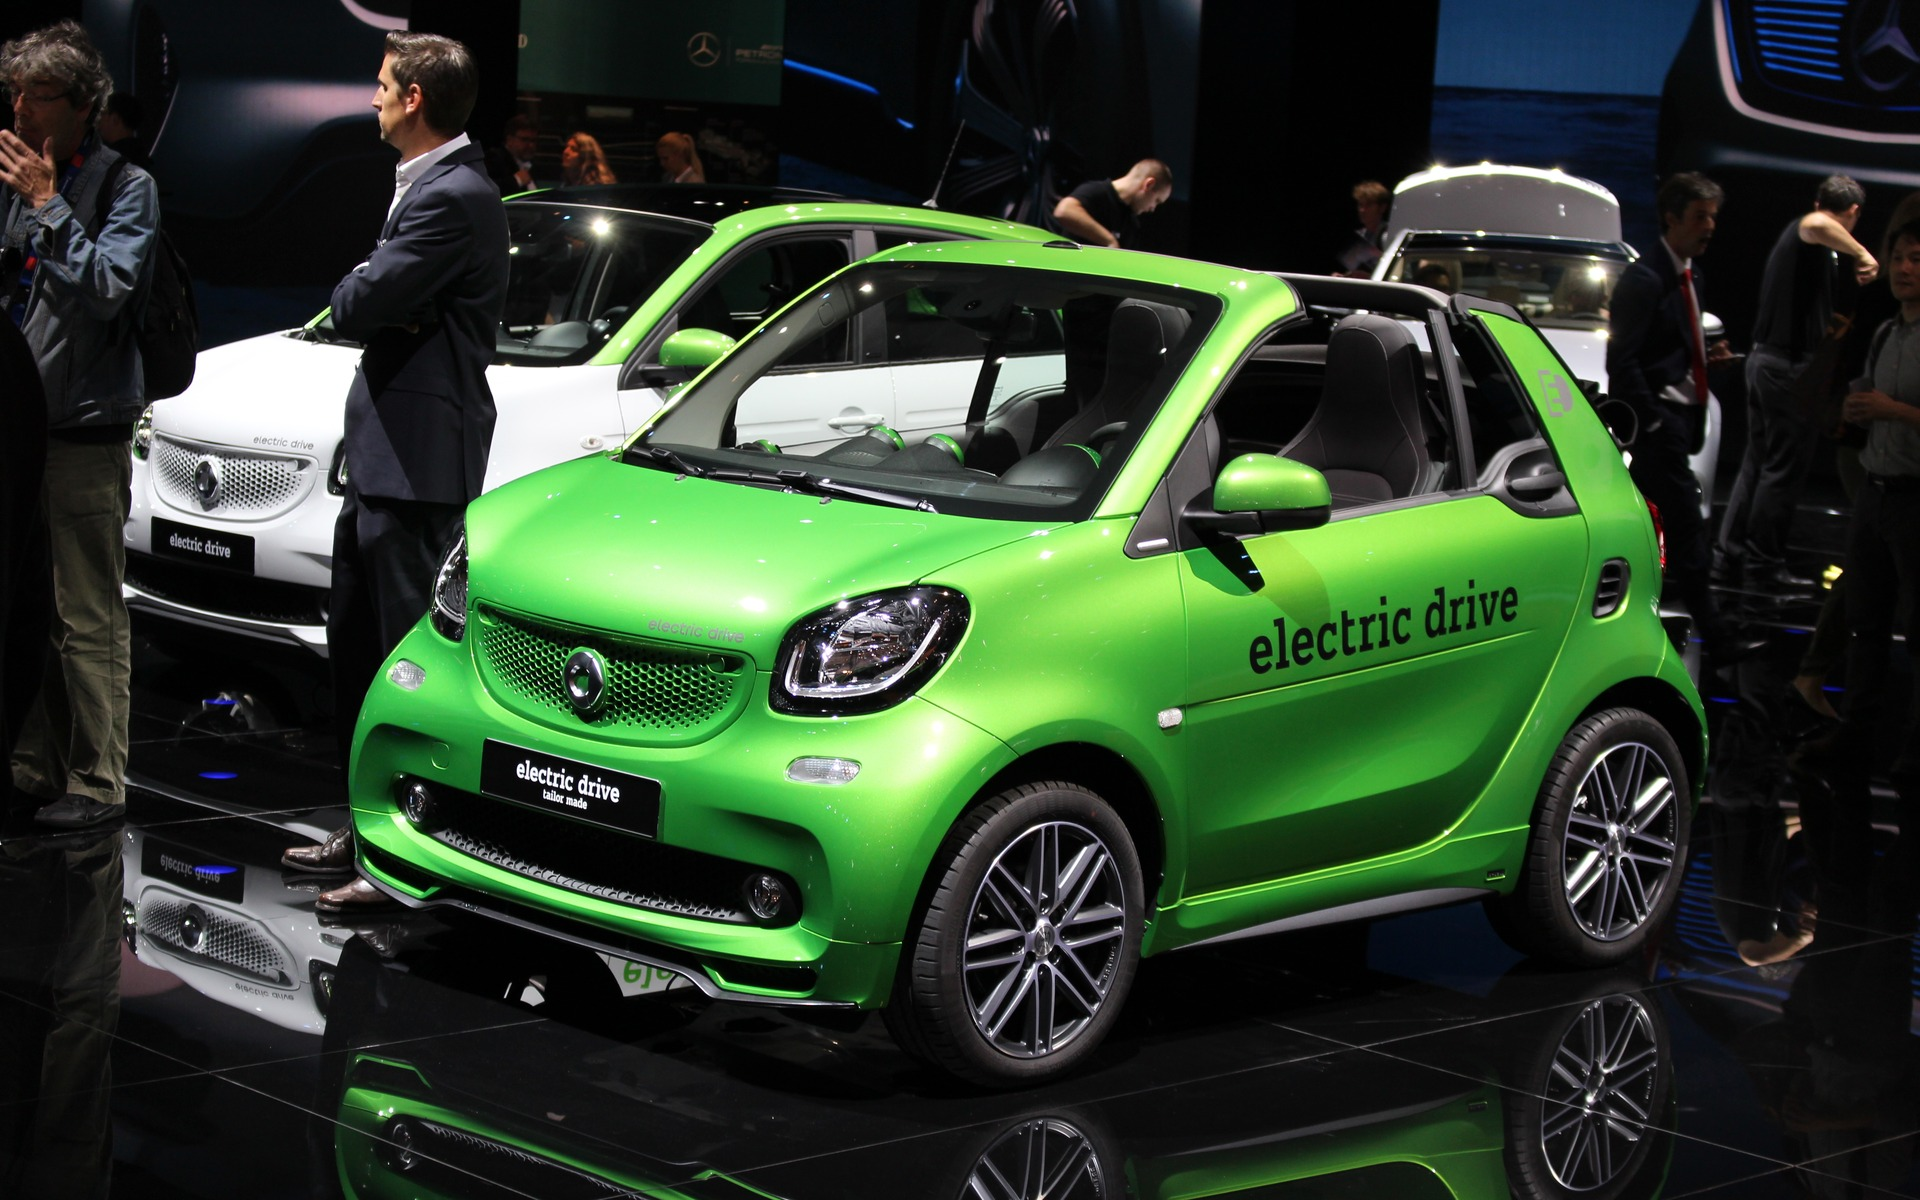 Smart Car Dealers >> 2017 smart fortwo electric drive: Return of the Electric City Car - 2/26